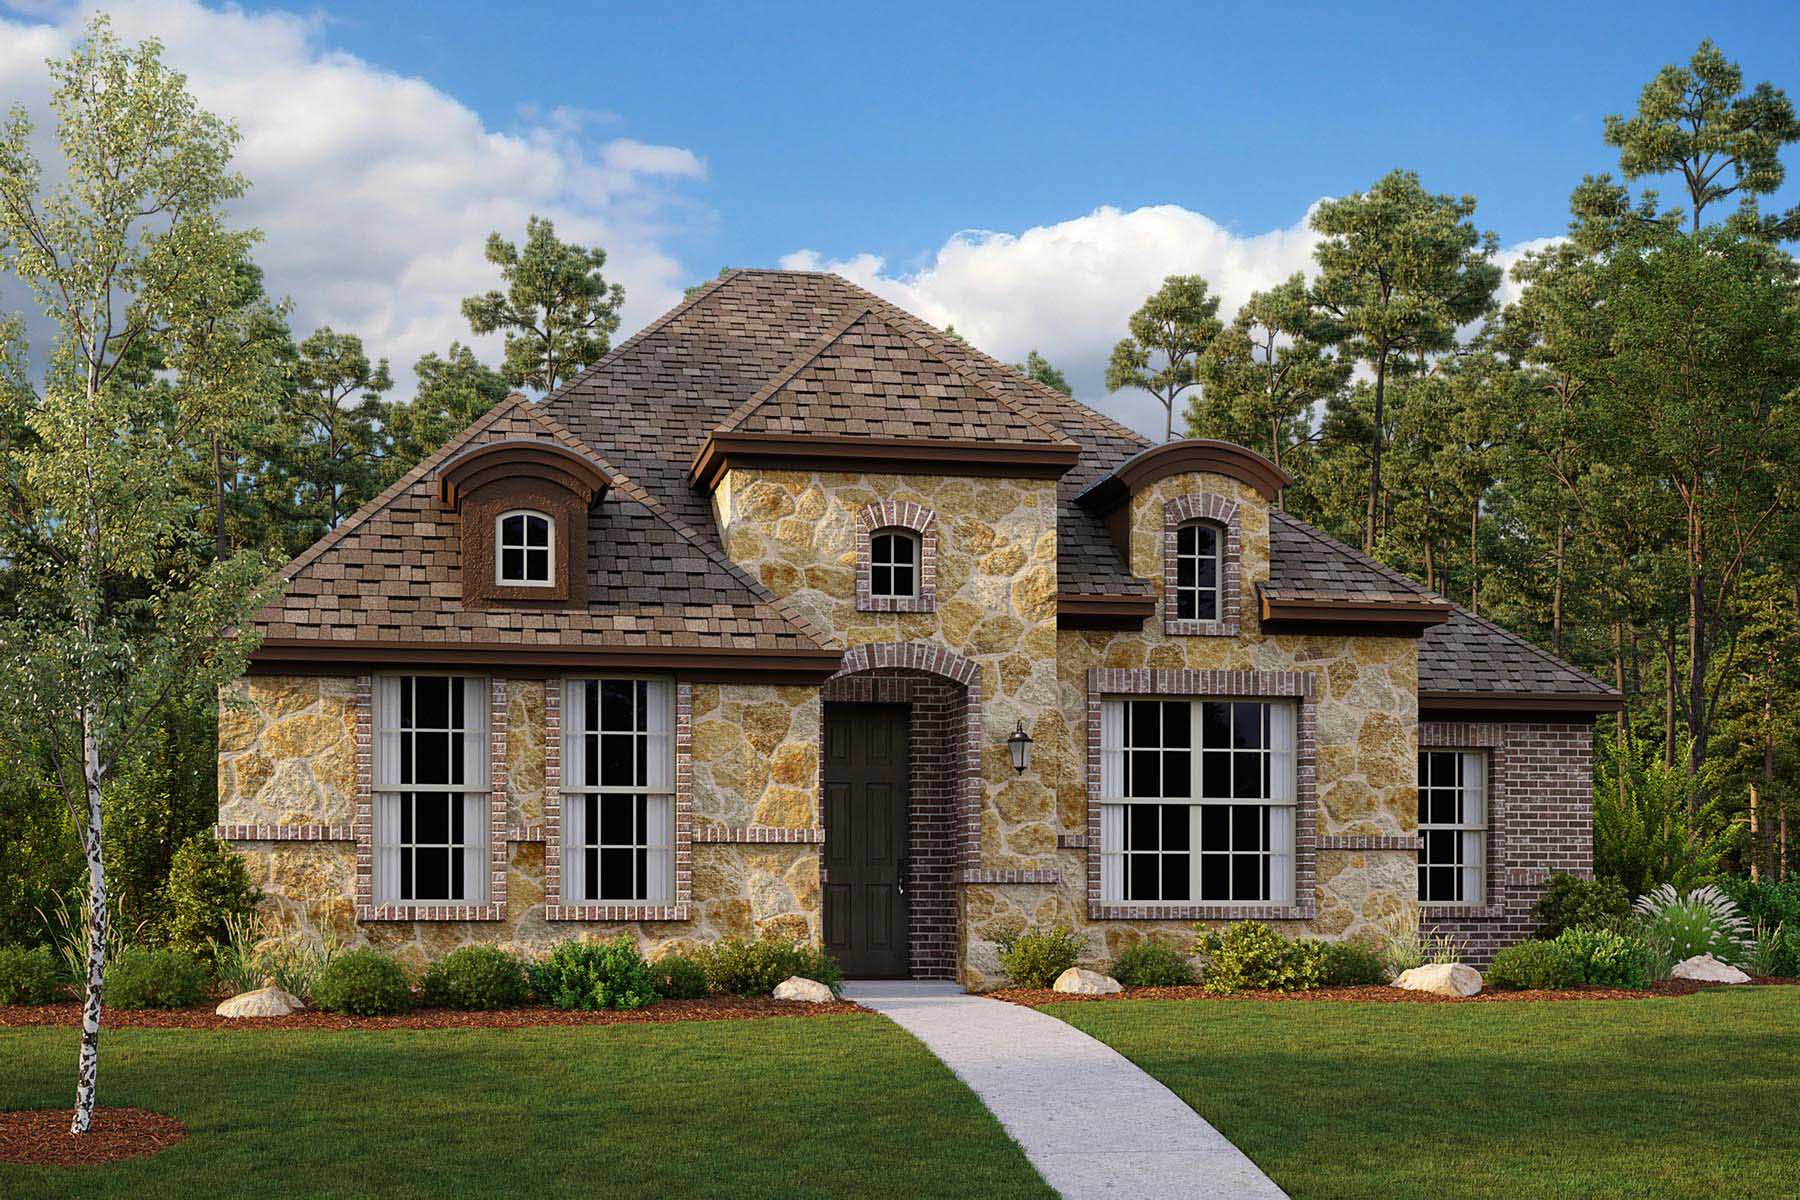 Winslow II Plan DAL_Winslow_ElevationA_1800x1200 at Villages of Creekwood in Frisco Texas by Mattamy Homes